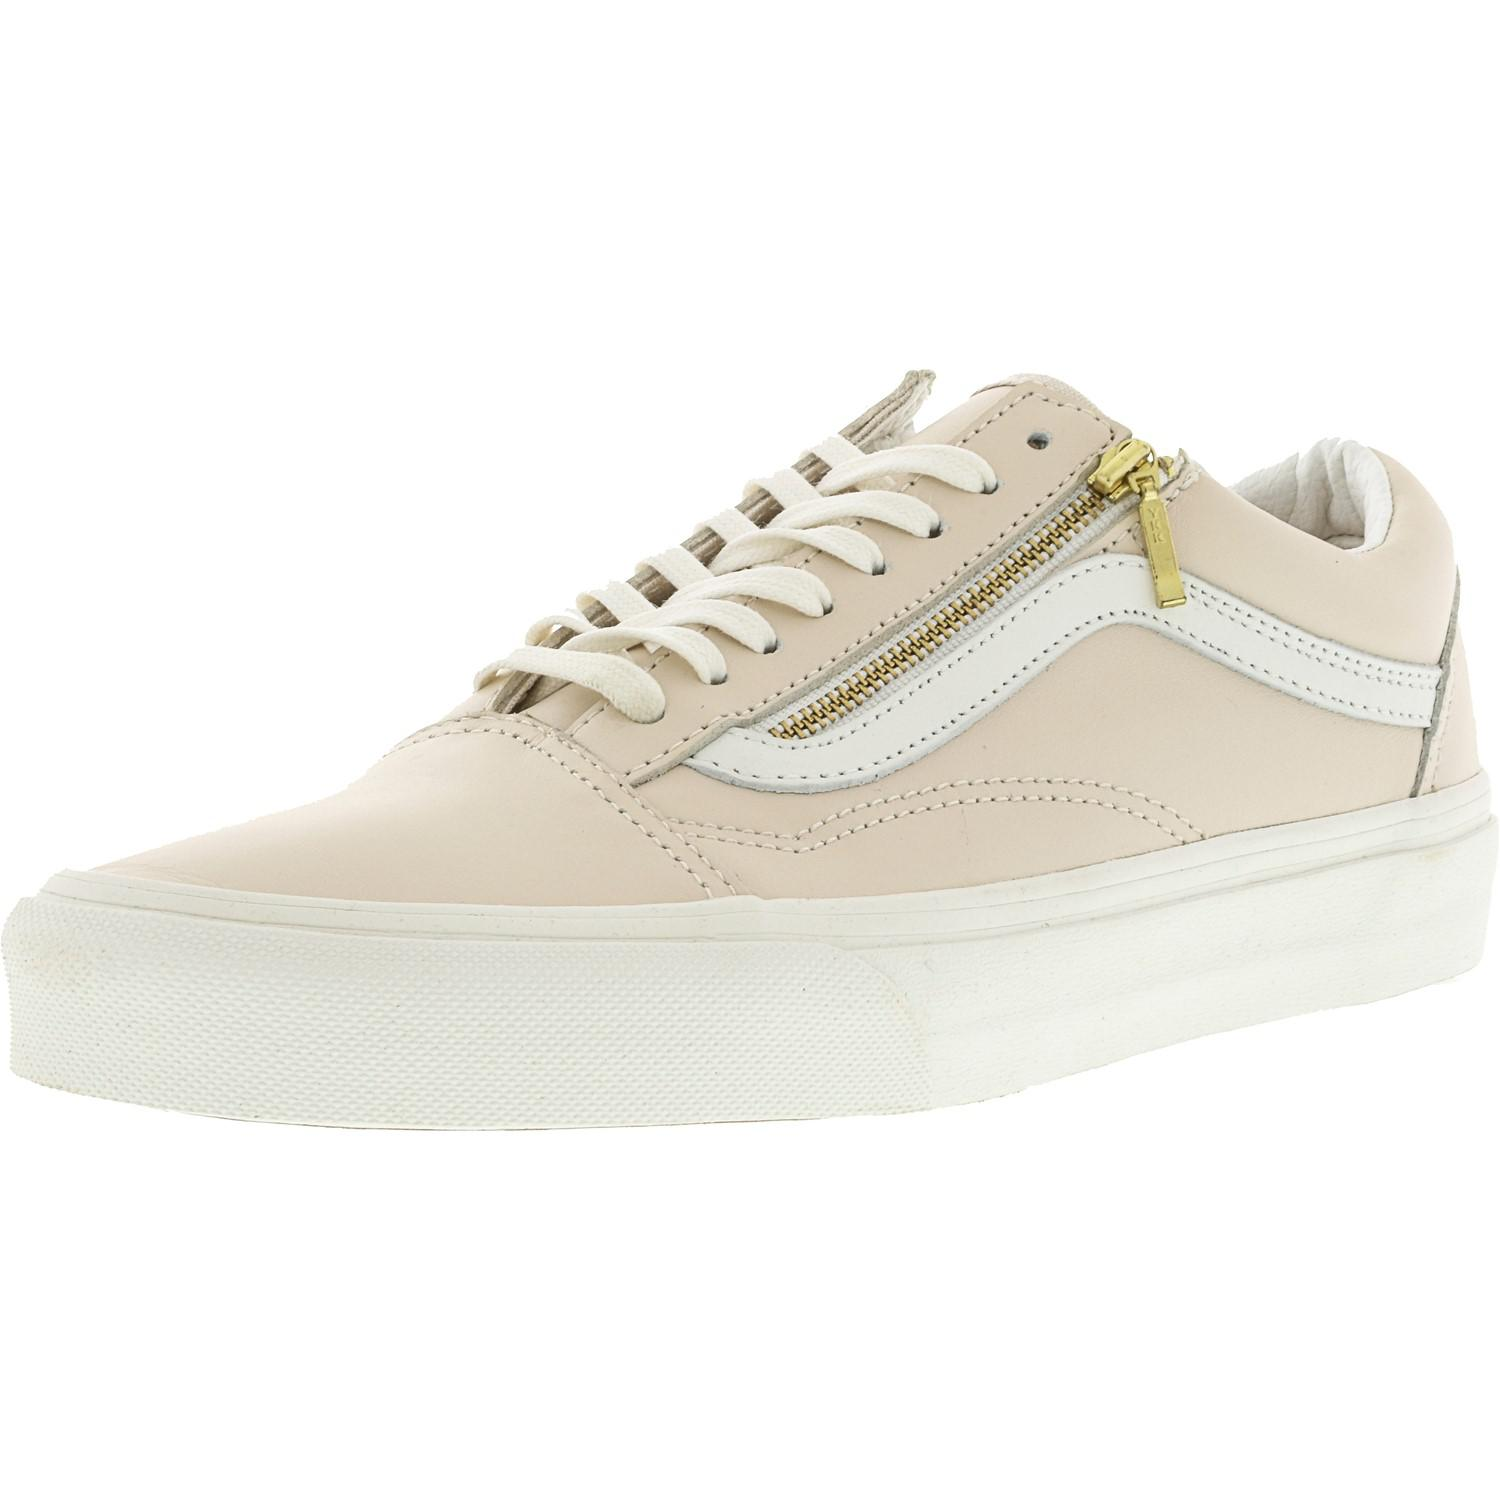 bba1527dcbe598 Lyst - Vans Old Skool Zip Leather Whispering Pink   Blanc De Ankle ...